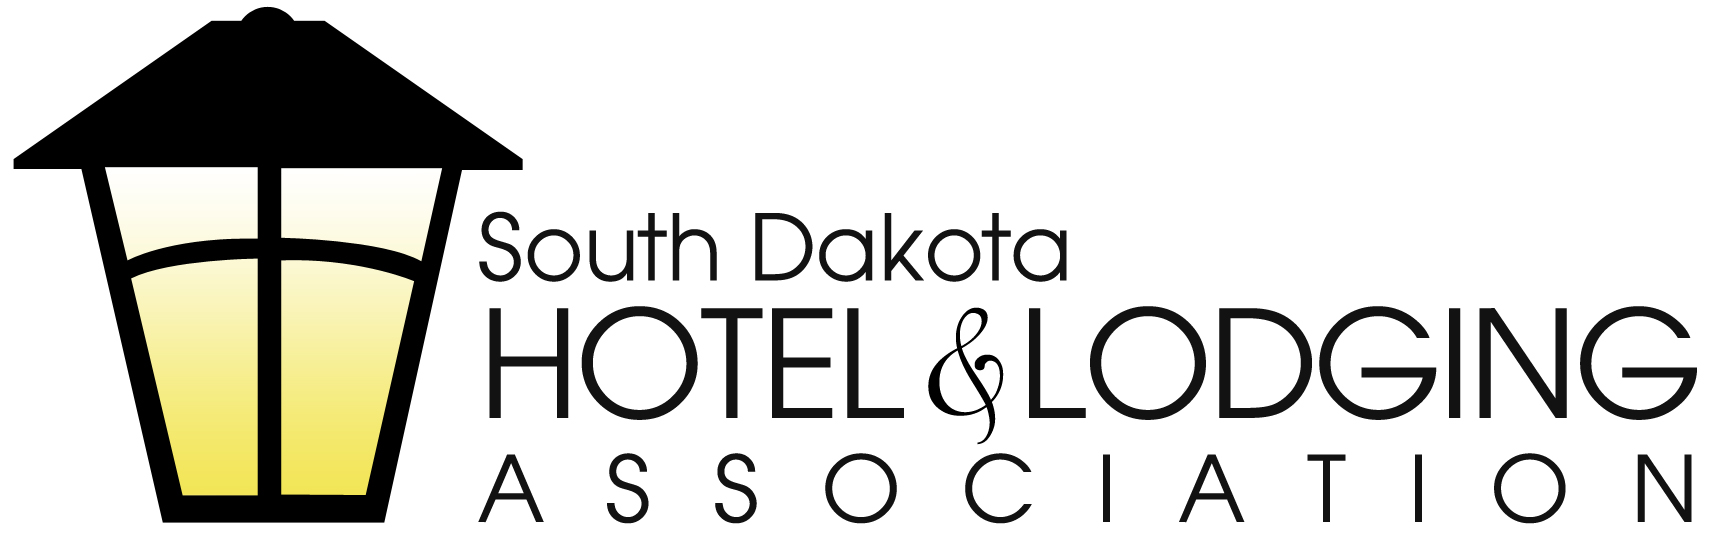 South Dakota Hotel and Lodging Association